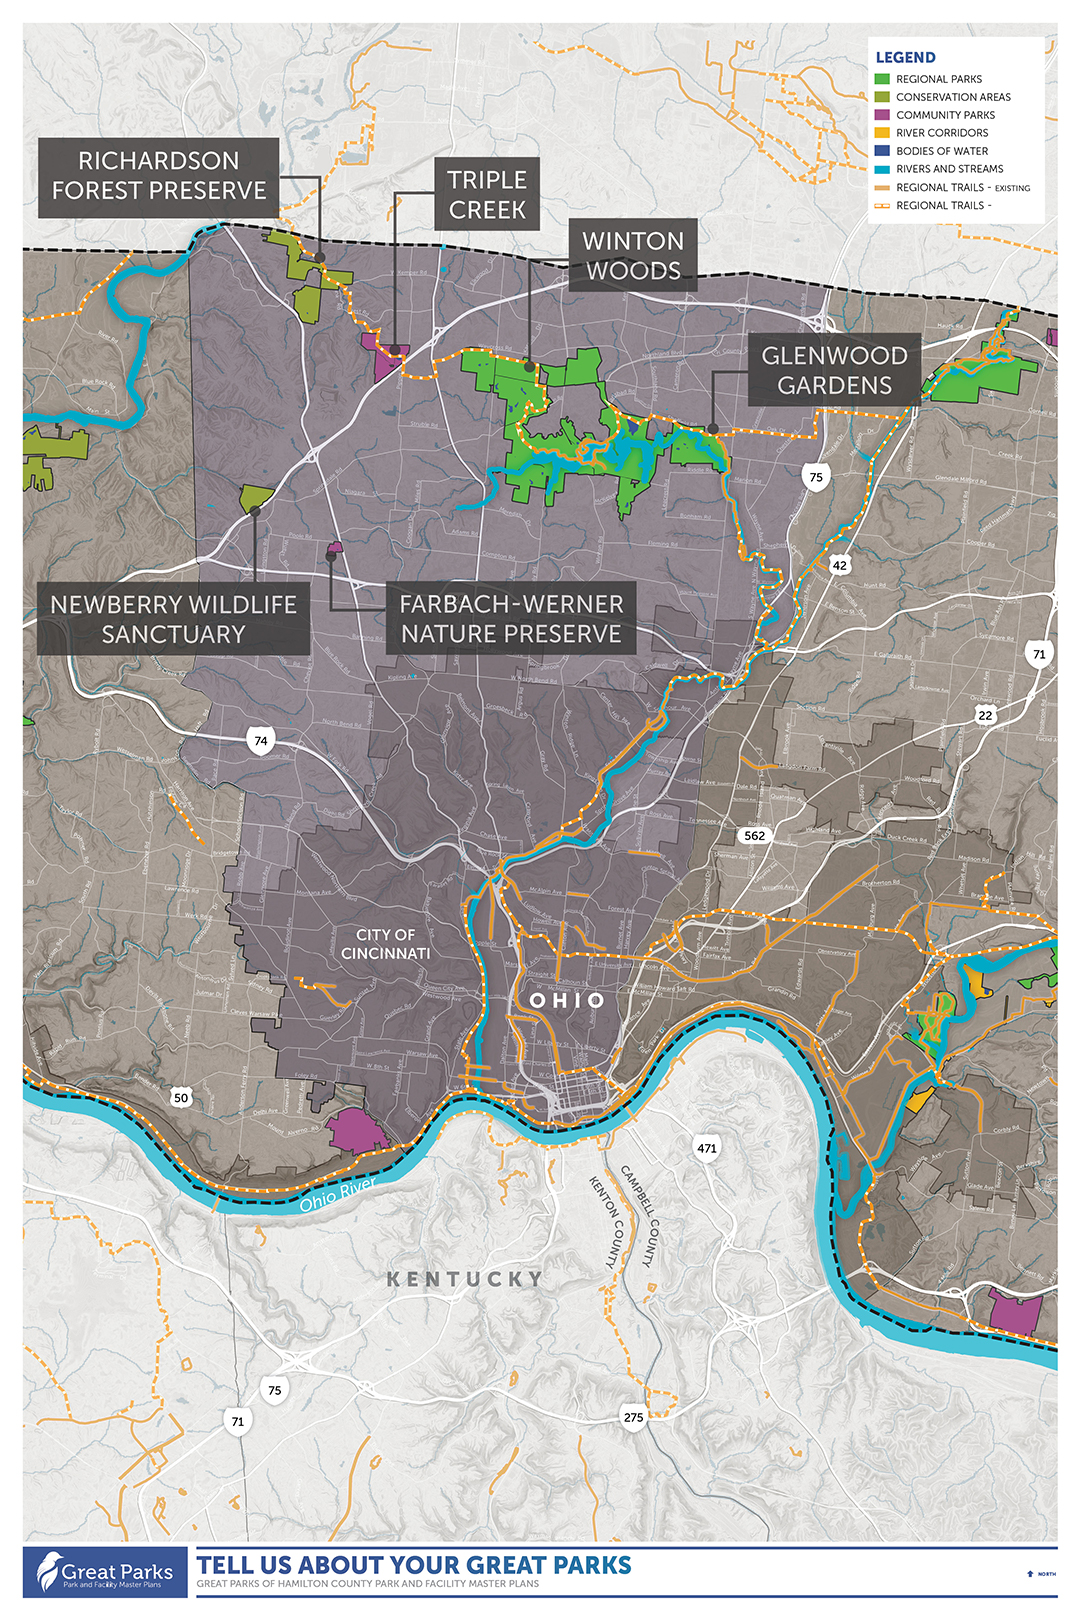 """The Central Region, shown below, includes the following parks: Richardson Forest Preserve, Triple Creek, Winton Woods, Glenwood Gardens, Newberry Wildlife Sanctuary, and Farbach-Werner Nature Preserve. You can open the map in a new browser tab by <span style=""""color: #ffff00;""""><a href=""""https://documentcloud.adobe.com/link/track?uri=urn:aaid:scds:US:071f58a8-4ec0-4096-a0a4-f0025f9fa247"""" rel=""""nofollow"""" style=""""color: #ffff00;"""" target=""""_blank"""">clicking here</a></span>."""